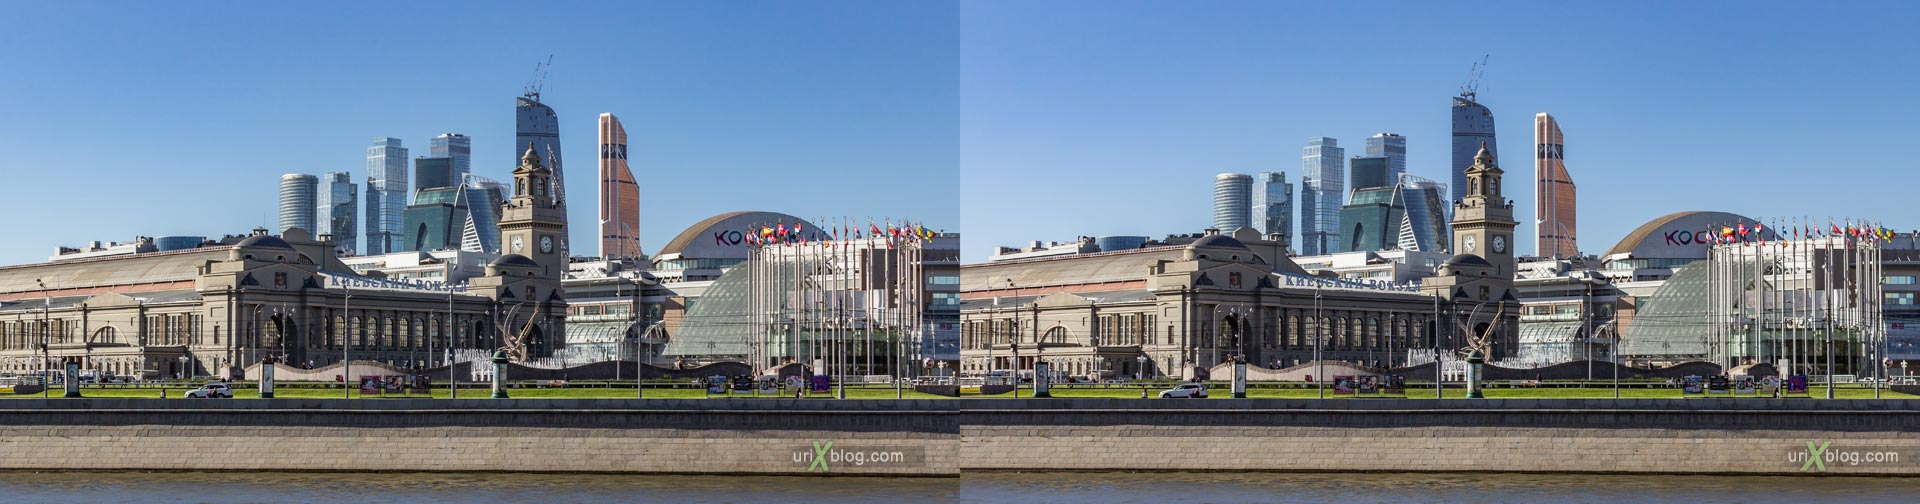 Moskva city, river, Rostovskaya embankment, Kievsky railway station, European square, Moscow, Russia, panorama, 3D, stereo pair, cross-eyed, crossview, cross view stereo pair, stereoscopic, 2015, hyperstereo